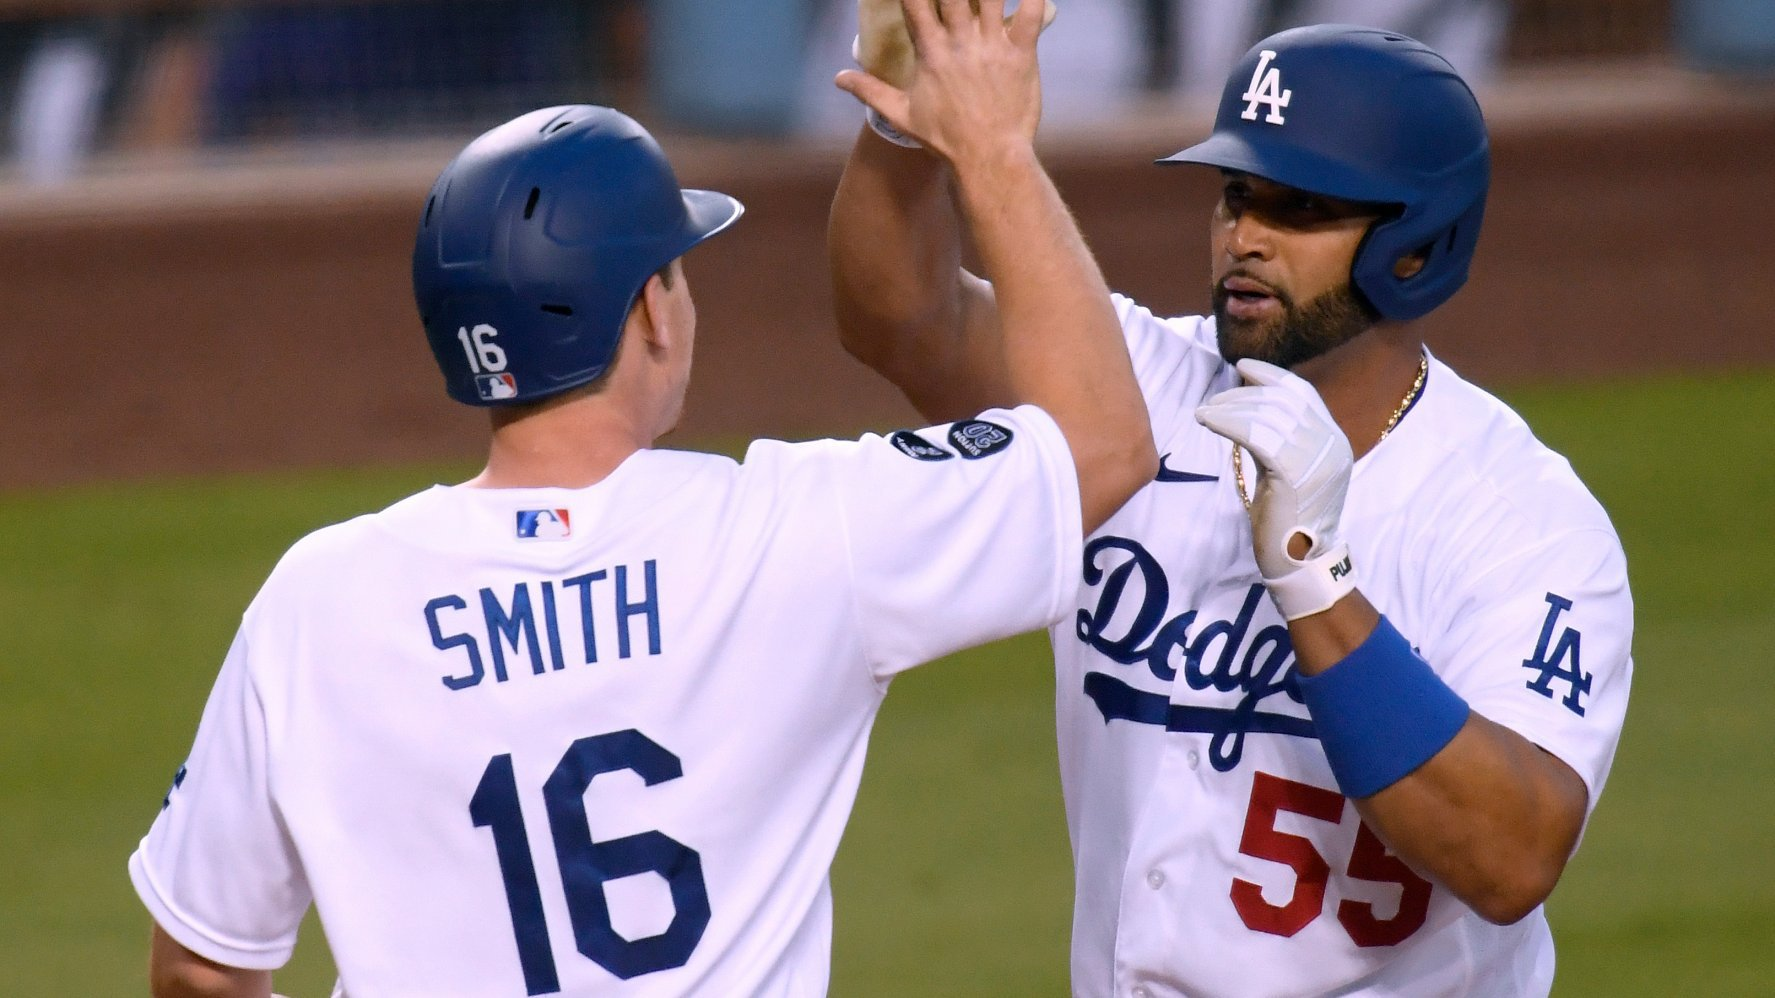 Dodgers vs Giants Preview: Bauer, Dodgers Favored in Series Opener in San Fran